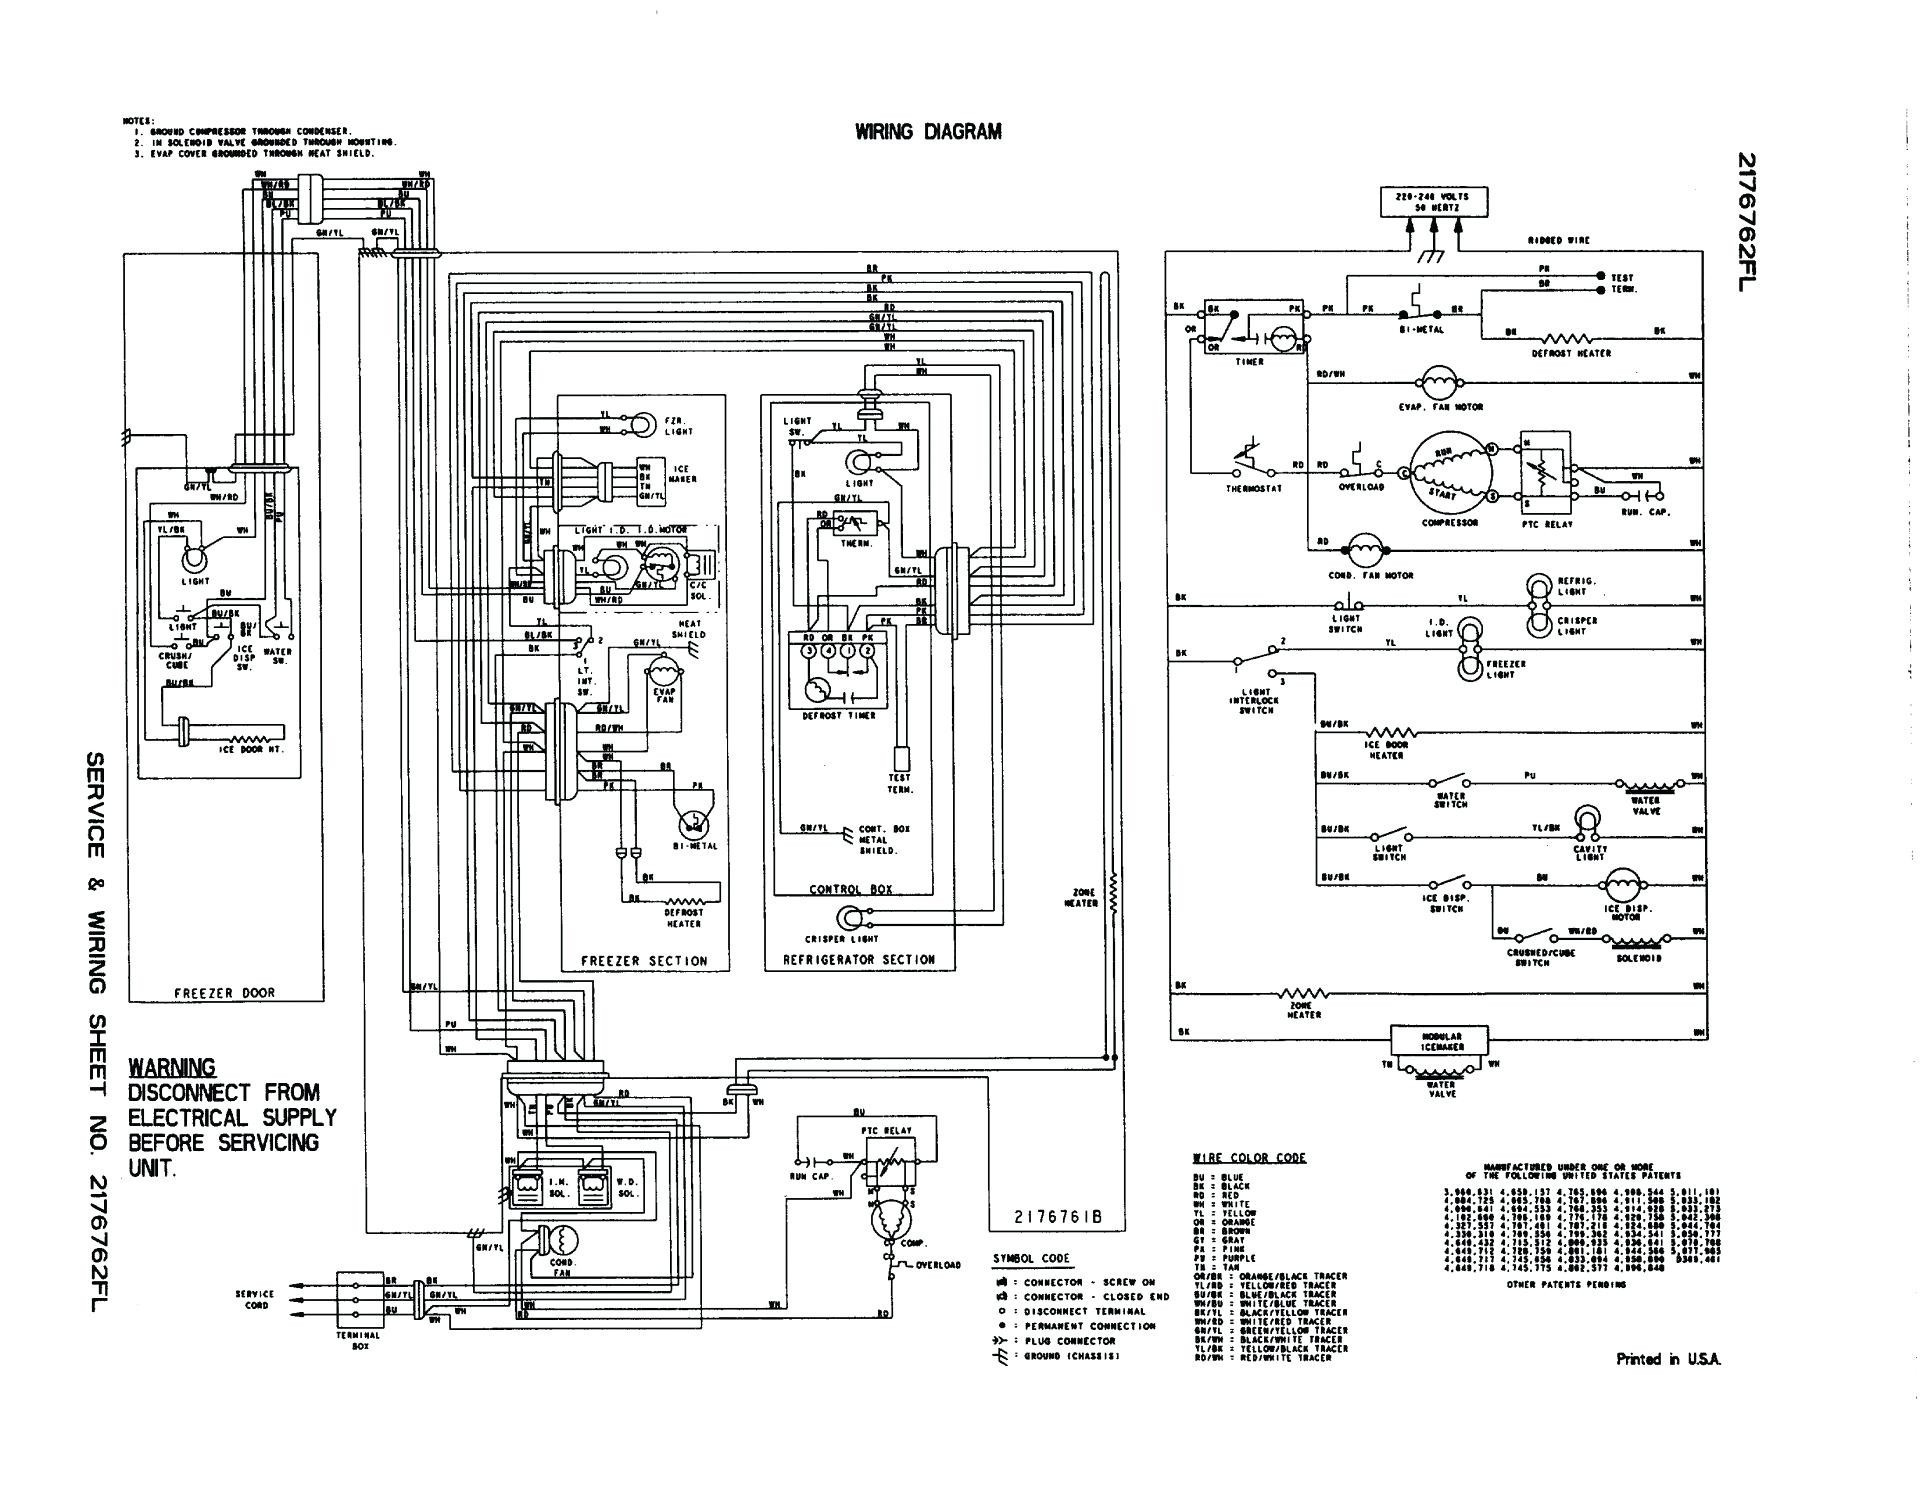 Beverage Air Freezer Wiring Diagram Sample on mack relay diagram, mack fuse diagram, mack rear end diagram, mack steering diagram, mack pump diagram, mack parts diagram, mack fuel system diagram, mack engine diagram, mack suspension, mack motor diagram, mack transmission diagram, mack hvac diagram,